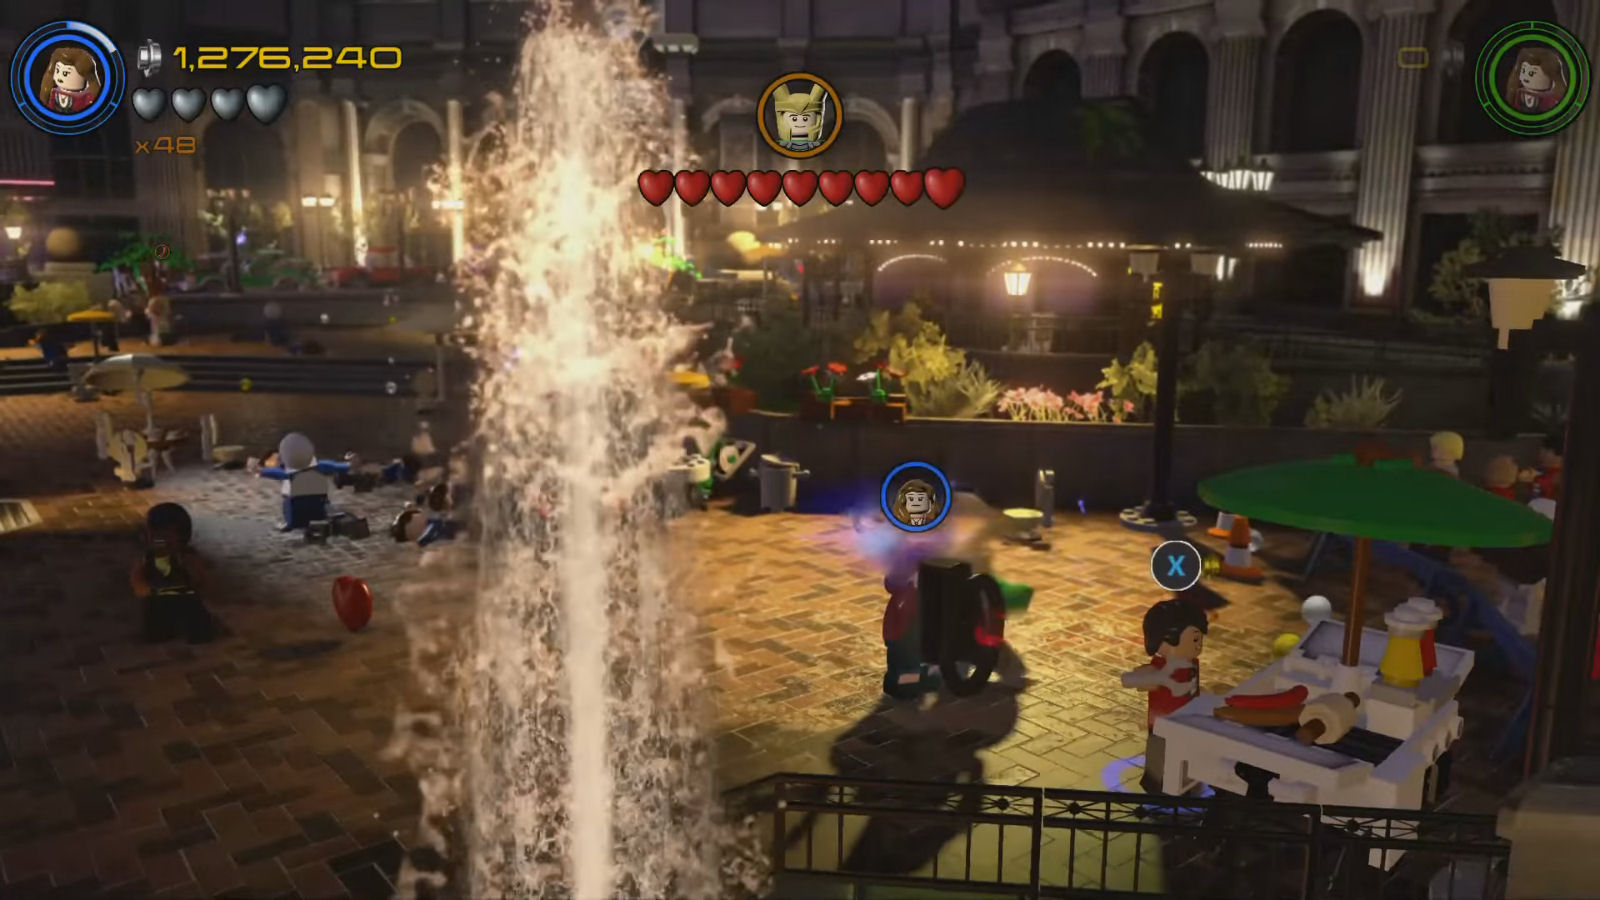 Lego Marvel's Avengers Red Brick 5: Studs x8 Location